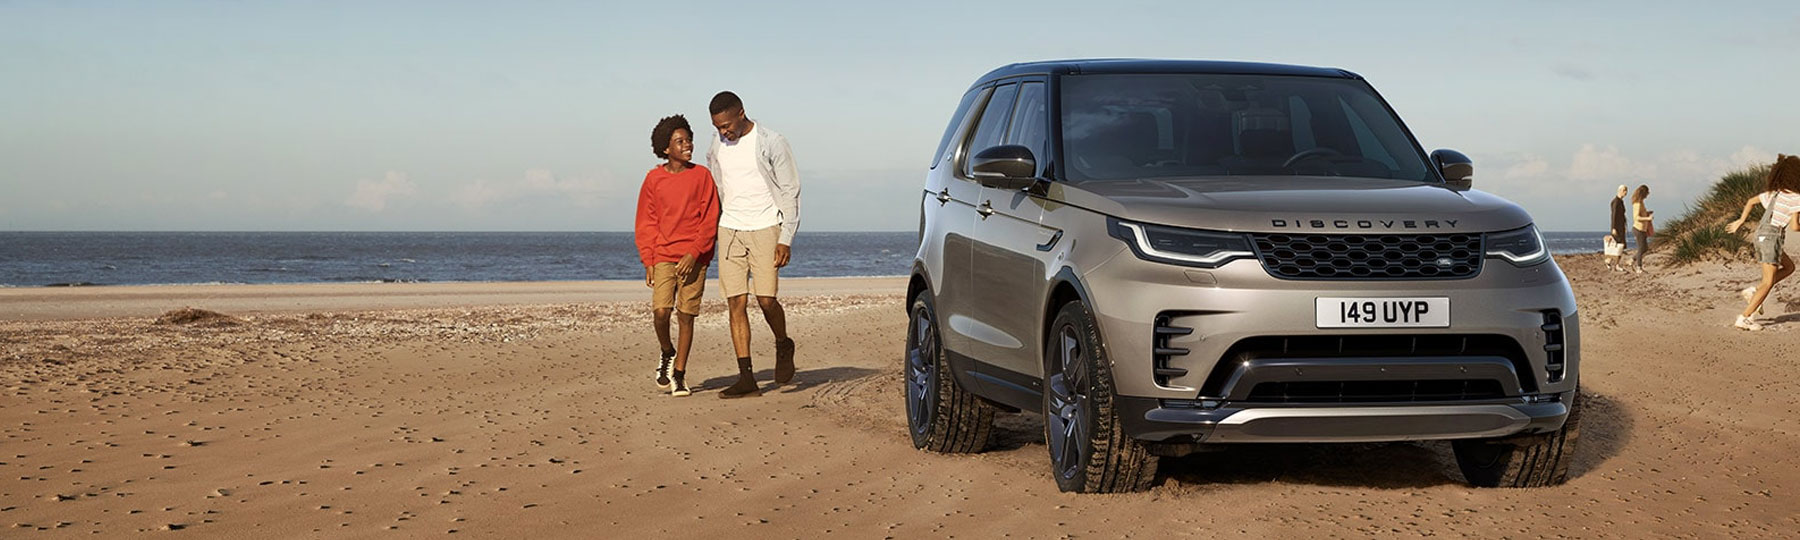 New Land Rover Discovery Personal Contract Hire Offer